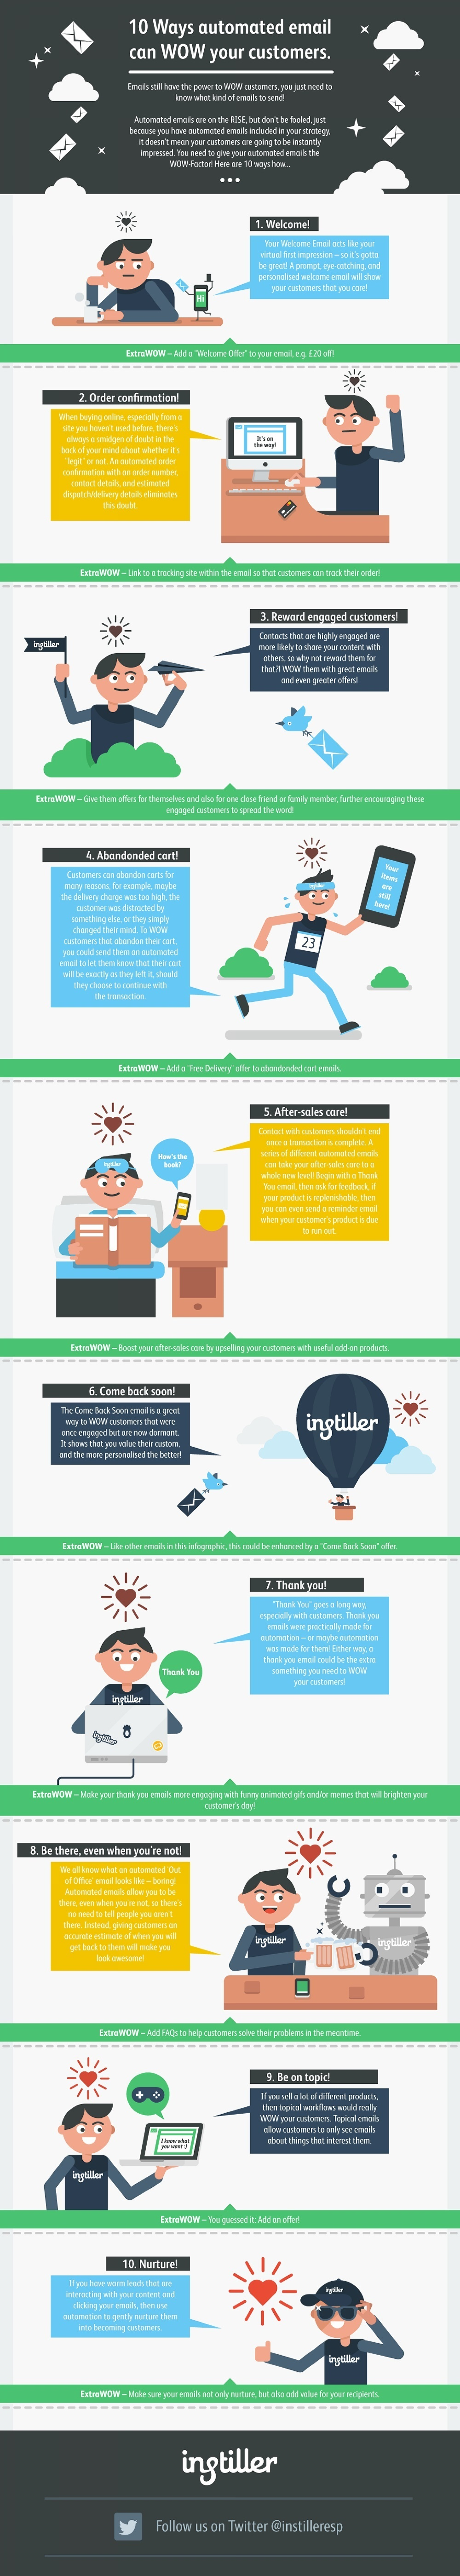 160326-10-ways-automated-email-can-wow-your-customers-infographic